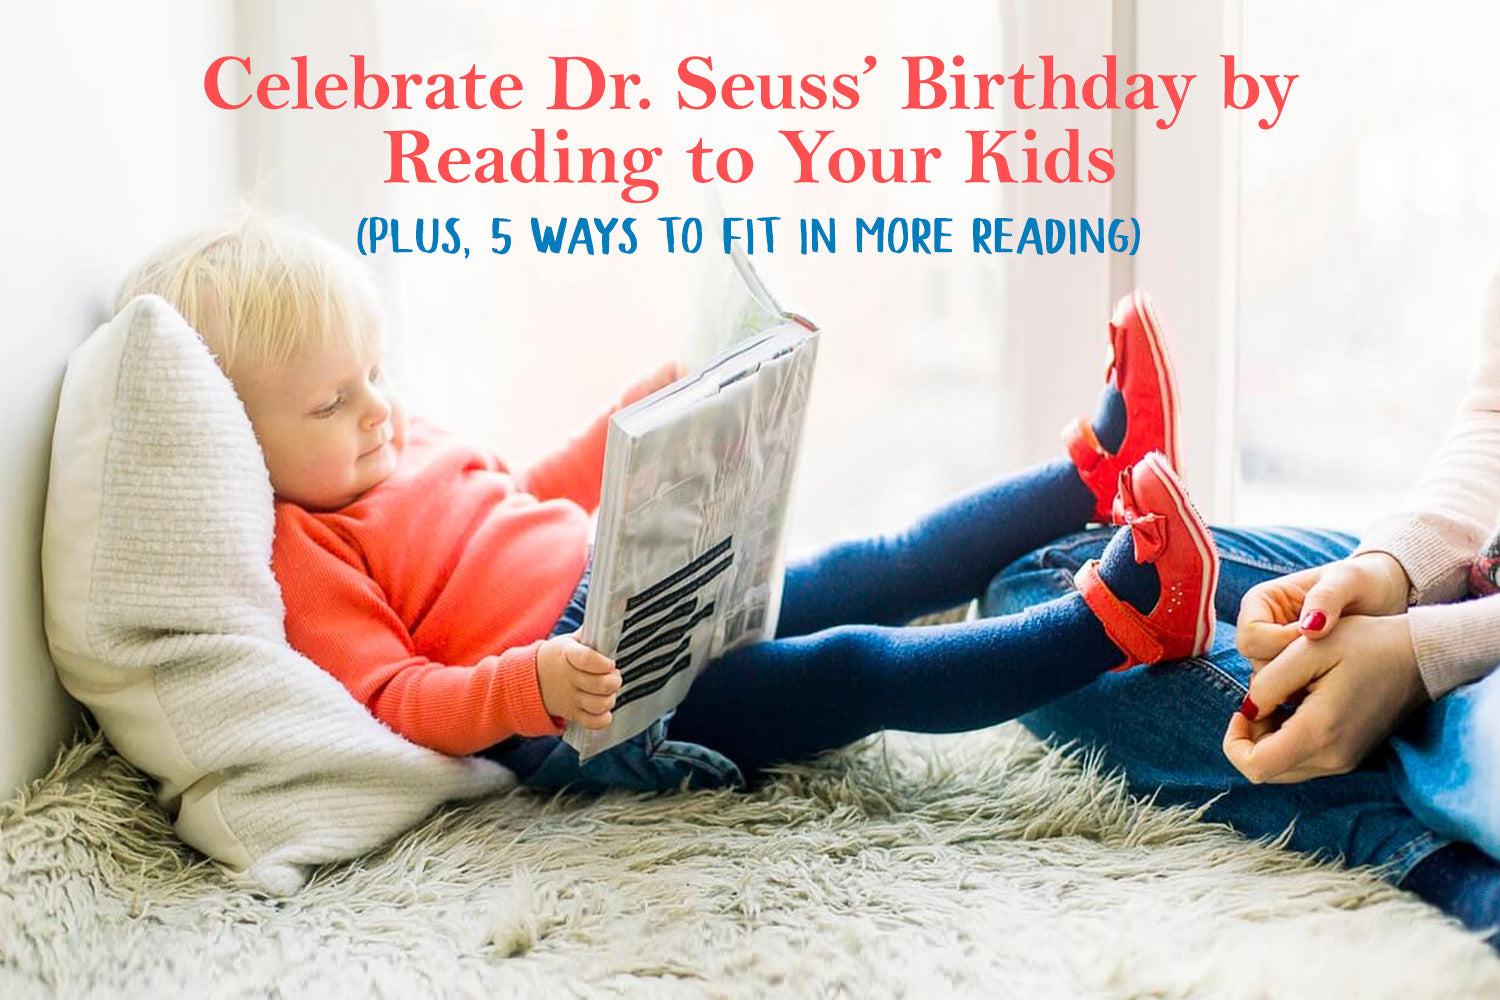 Celebrate Dr. Seuss' Birthday by Reading to Your Kids (Plus, 5 Ways to Fit in More Reading)